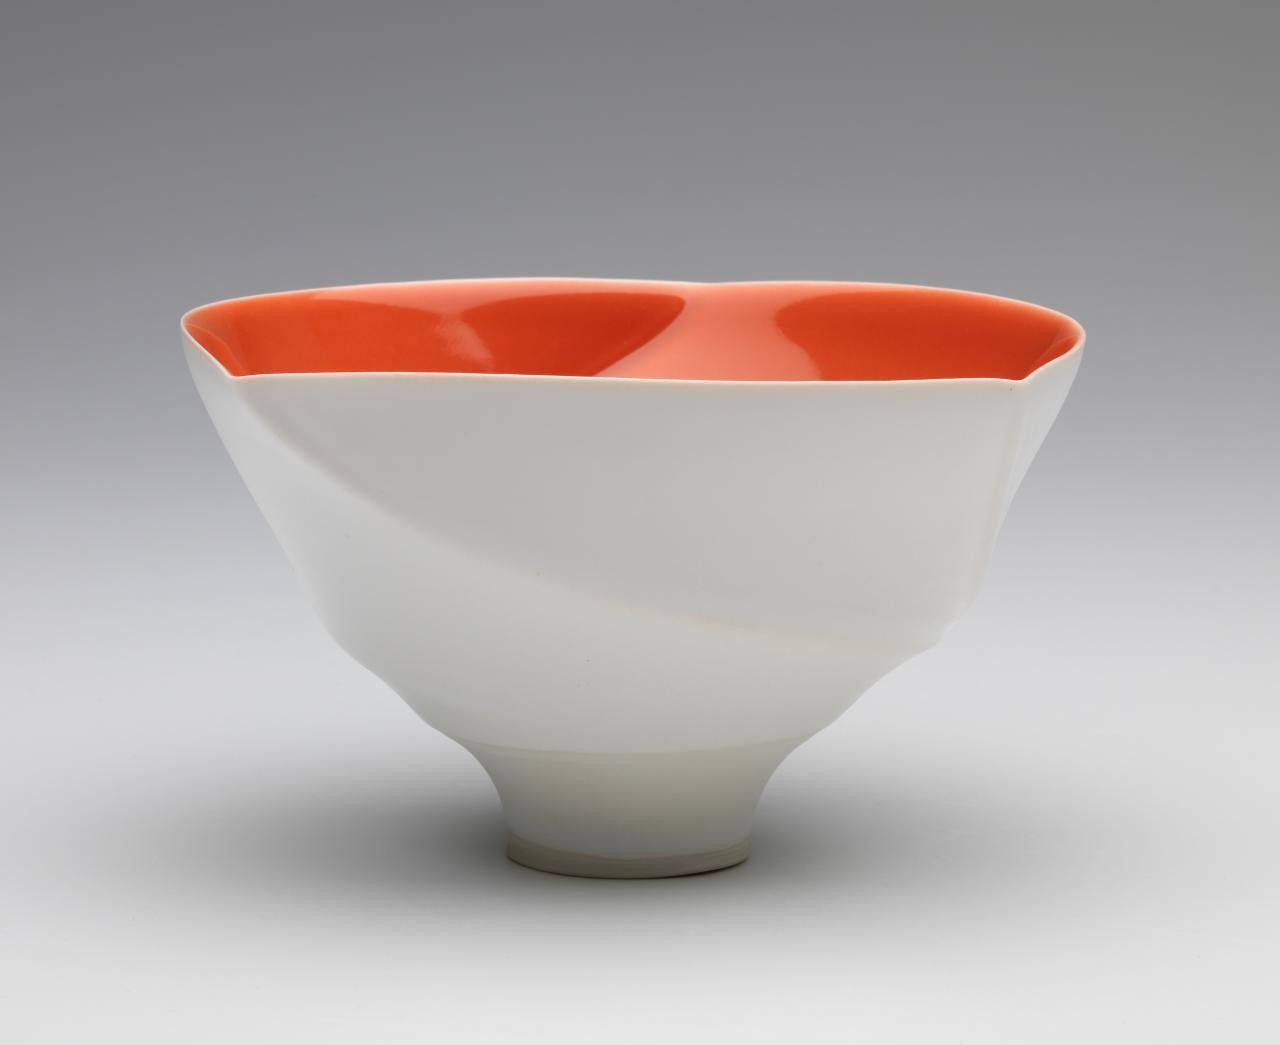 Spiral lipped bowl with orange/red interior glaze